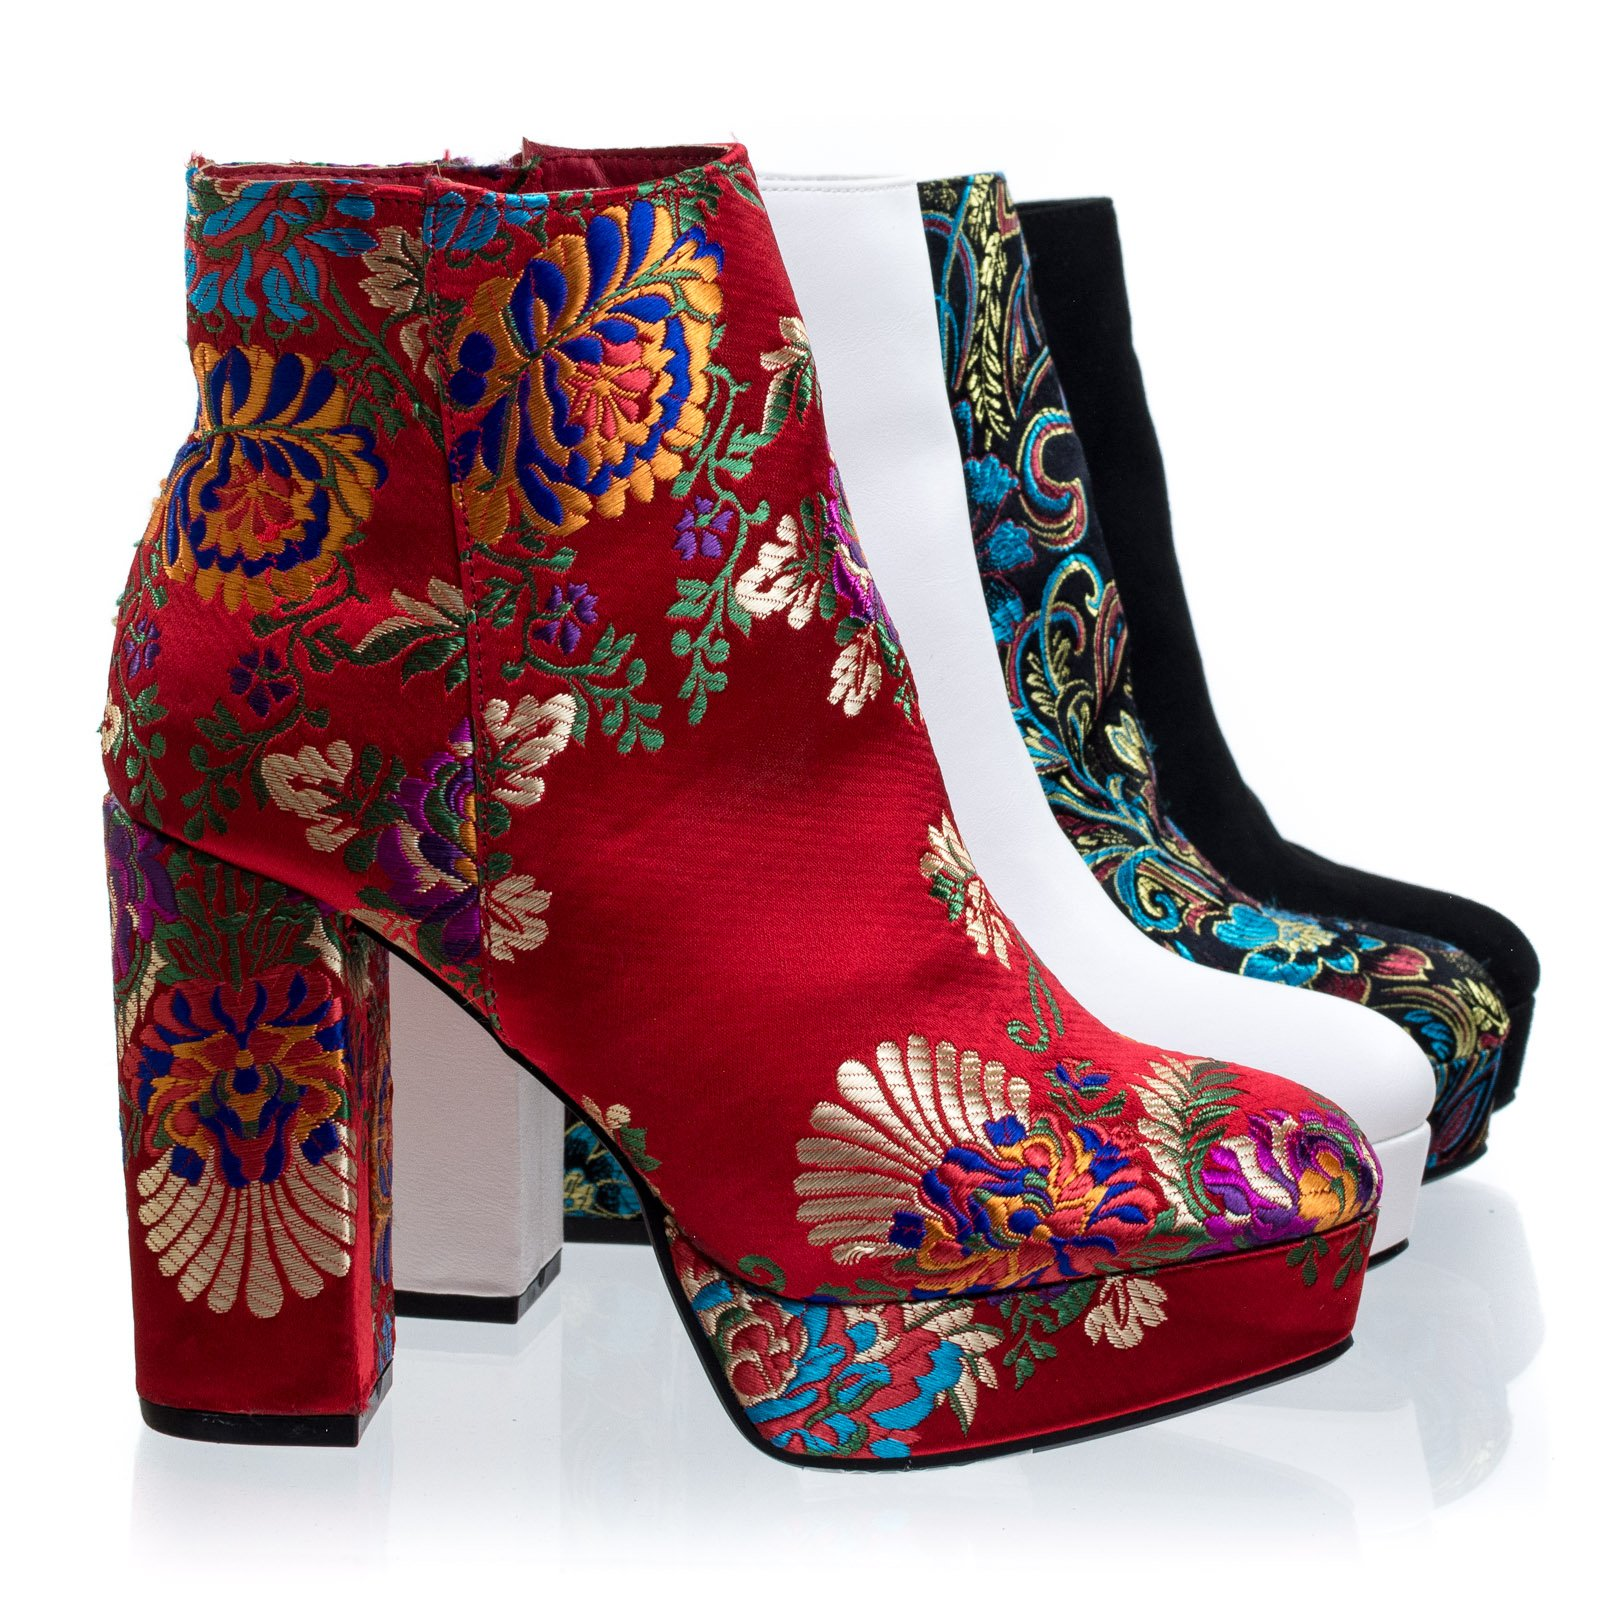 Connection02 Red Embroidery Chunky Block Heel Platform Bootie w Faux Fur Inner Lining -10